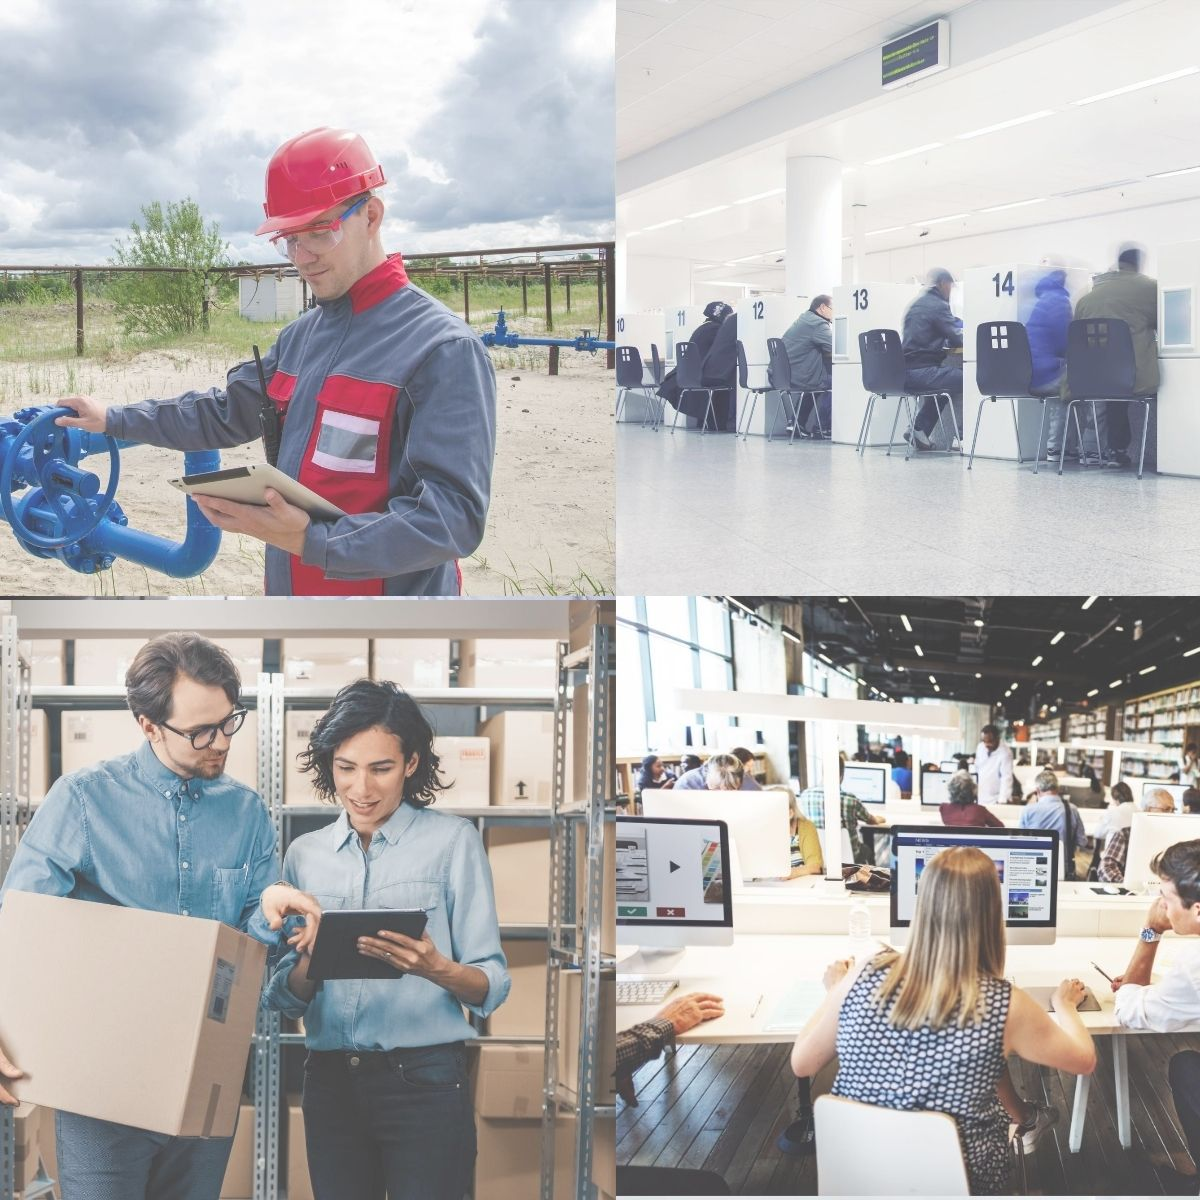 Collage of four pictures: Man looking at a tablet, government office, two people in a warehouse, and people working in an office